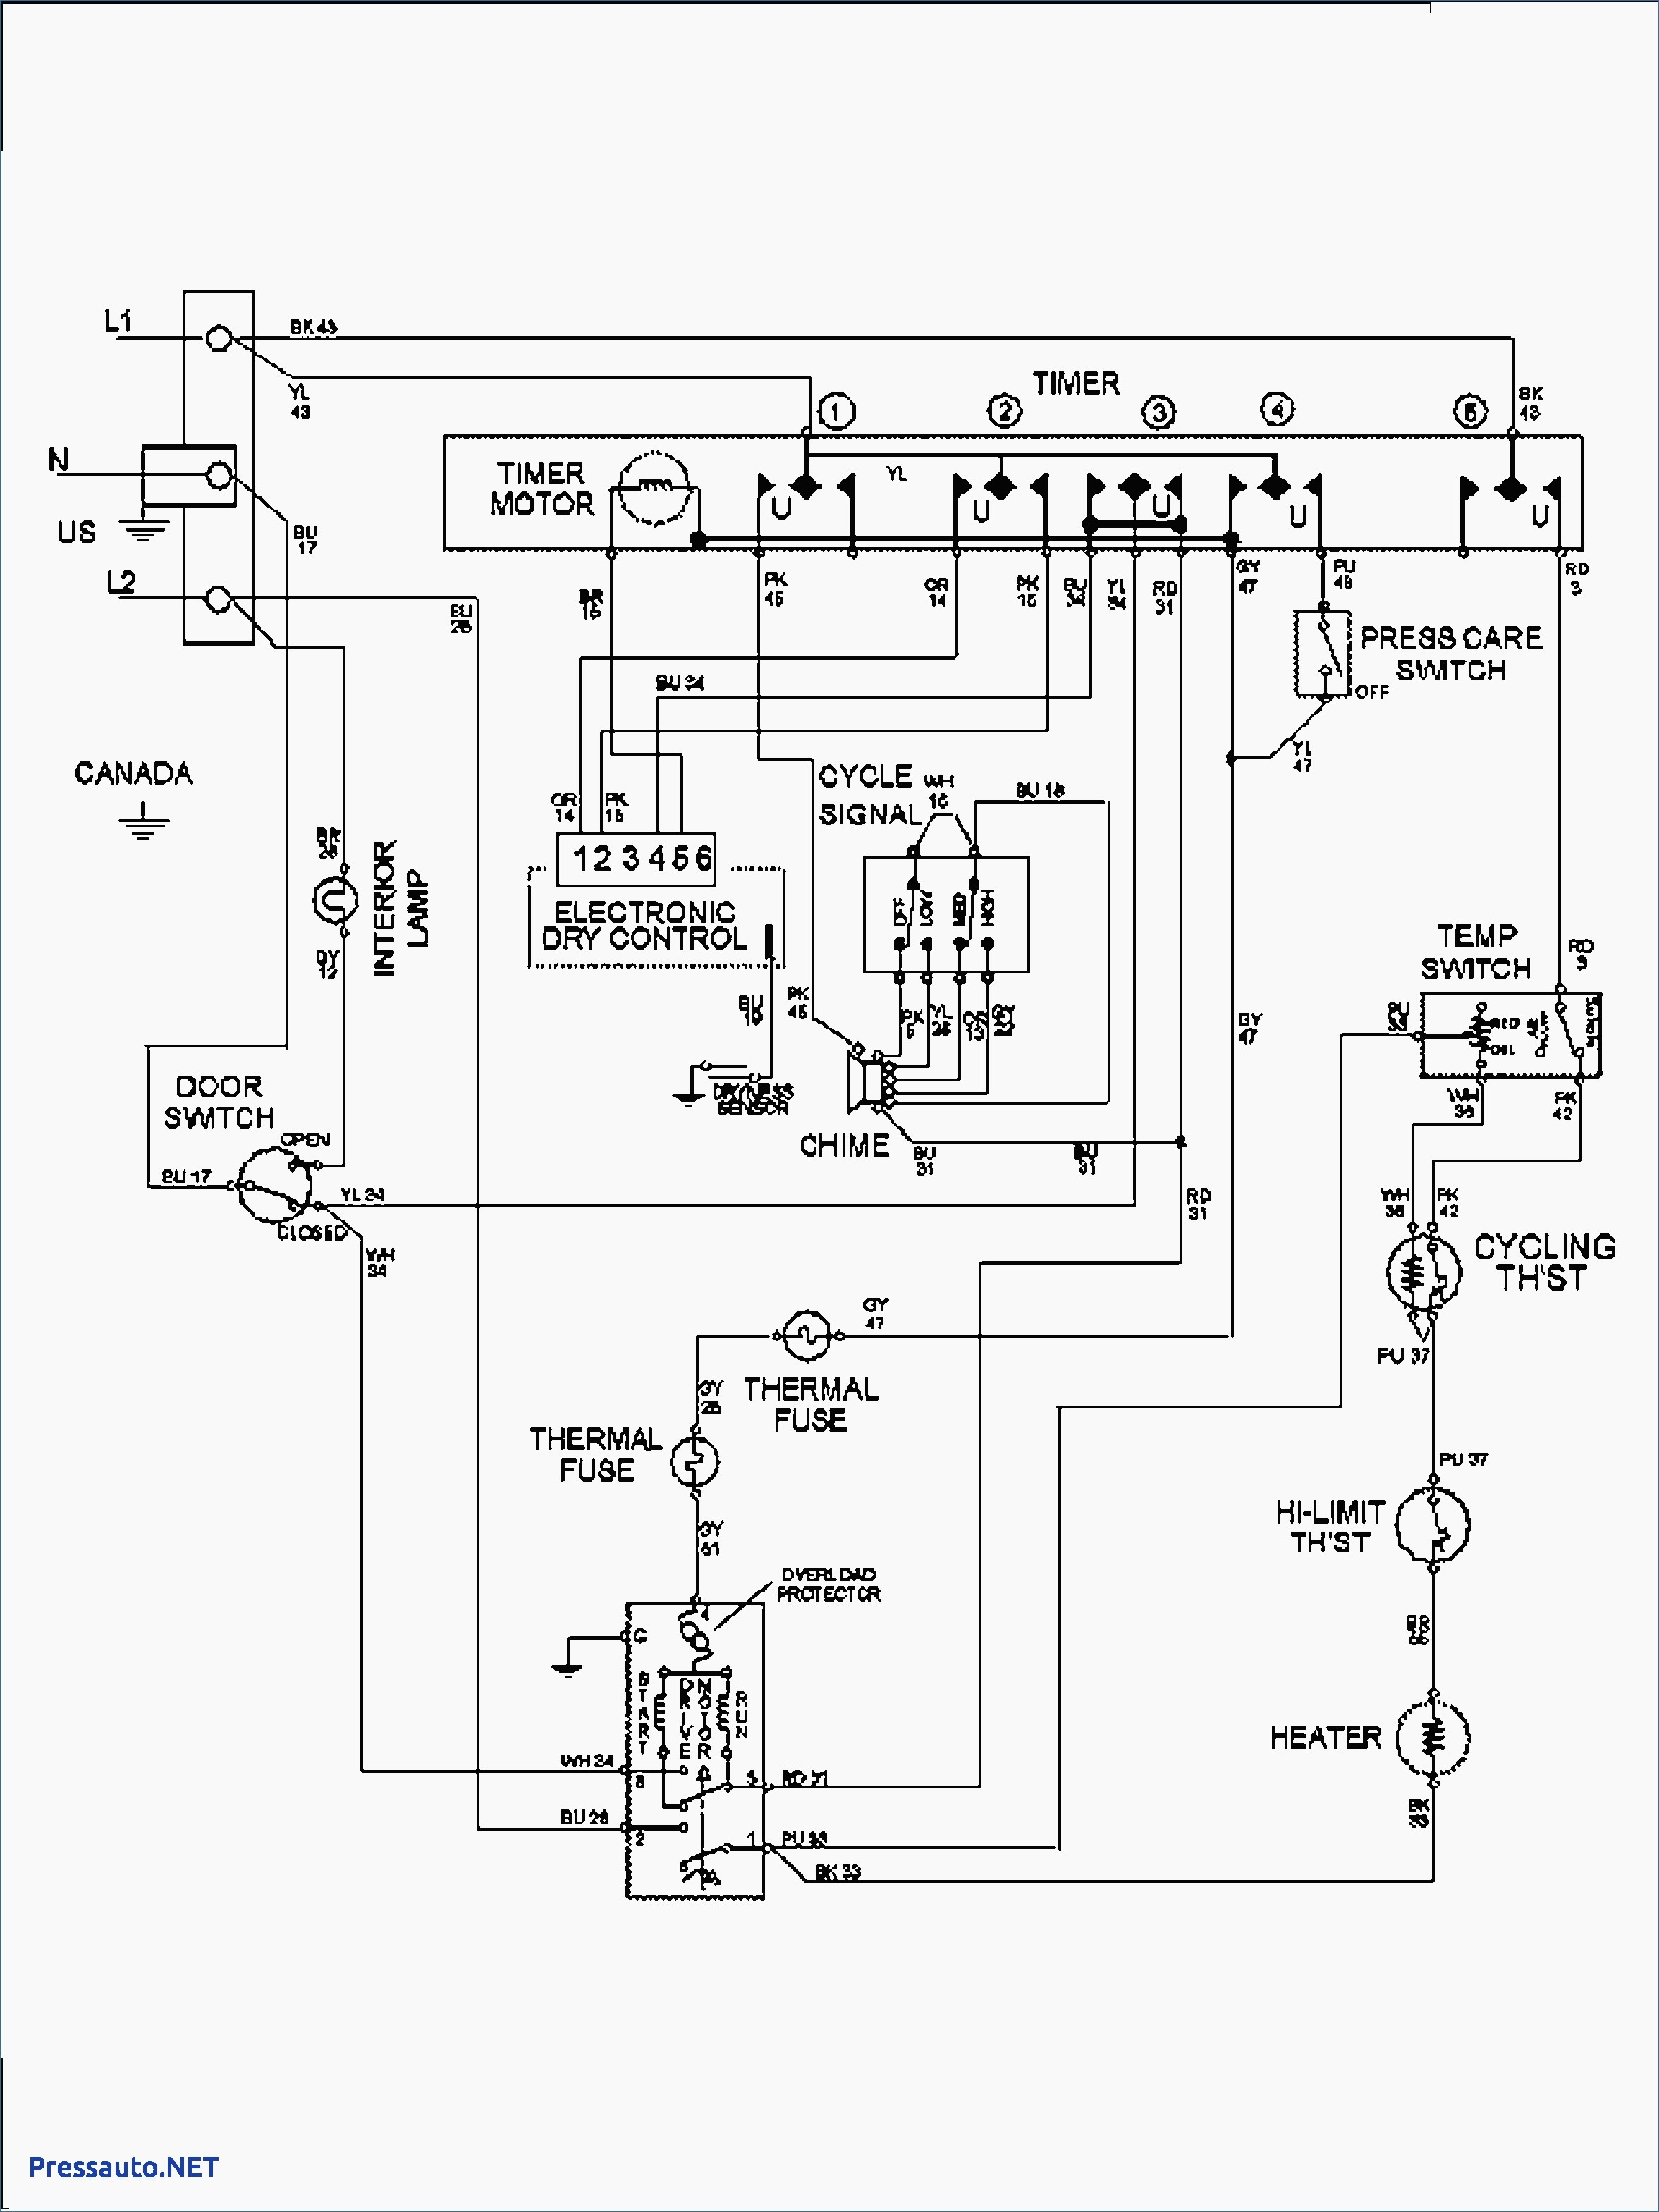 Wiring Diagram Whirlpool Dryer Fefl88acc Electric Range Of Electronic Clock Related Post